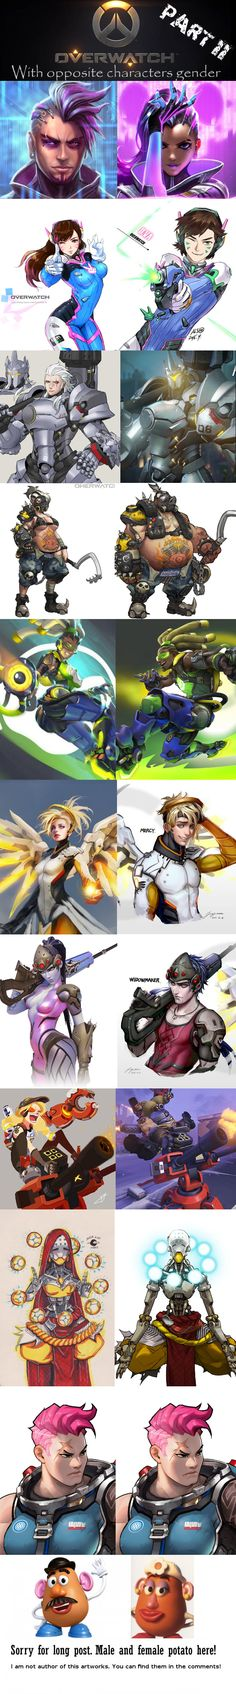 Overwatch characters in opposite gender! [Part II]